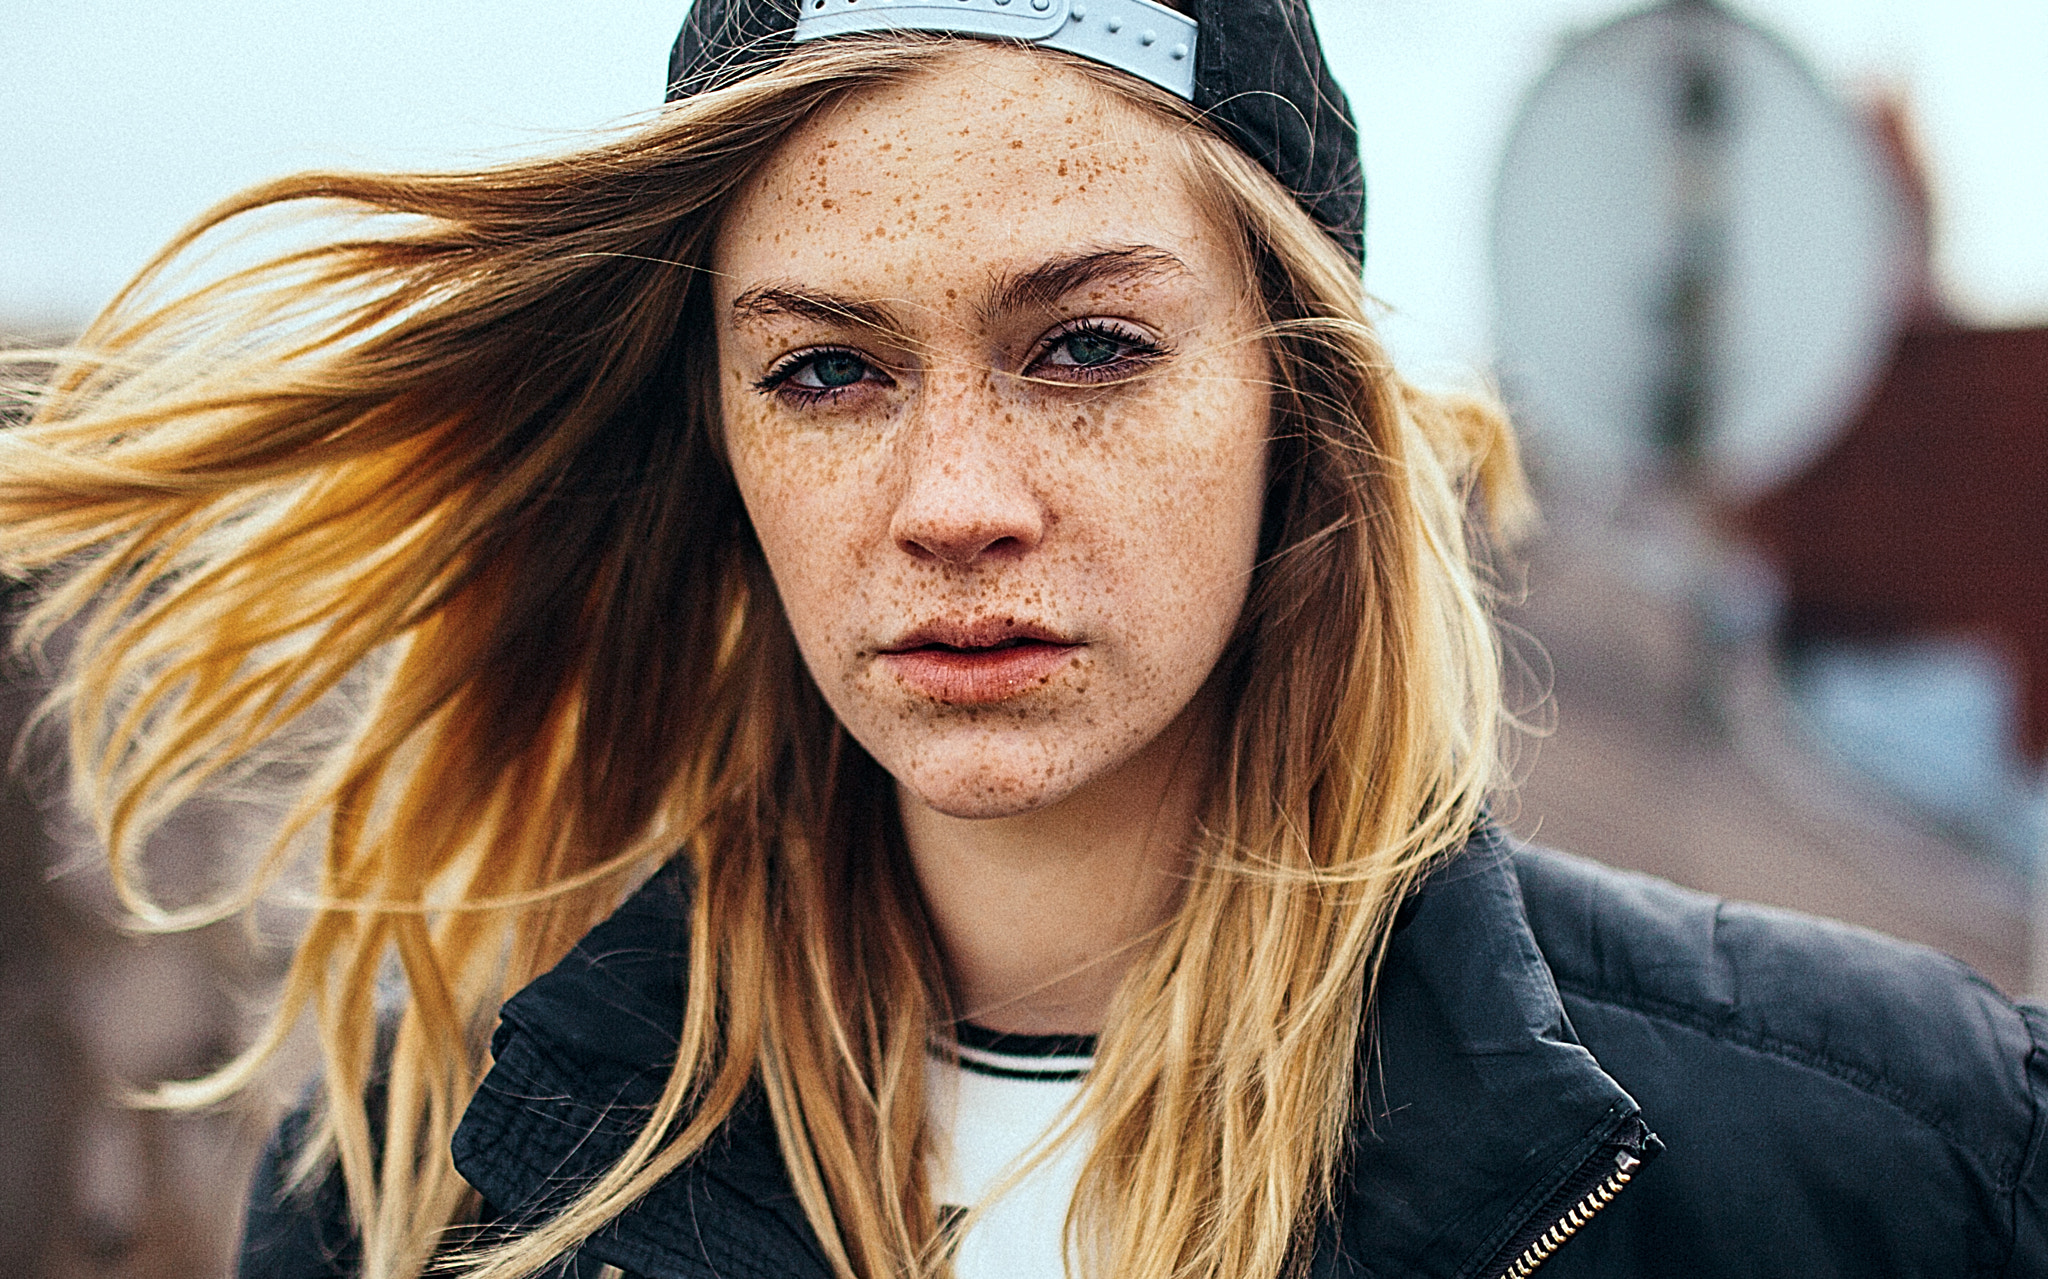 People 2048x1279 women blonde blue eyes baseball caps open mouth freckles looking at viewer André Josselin